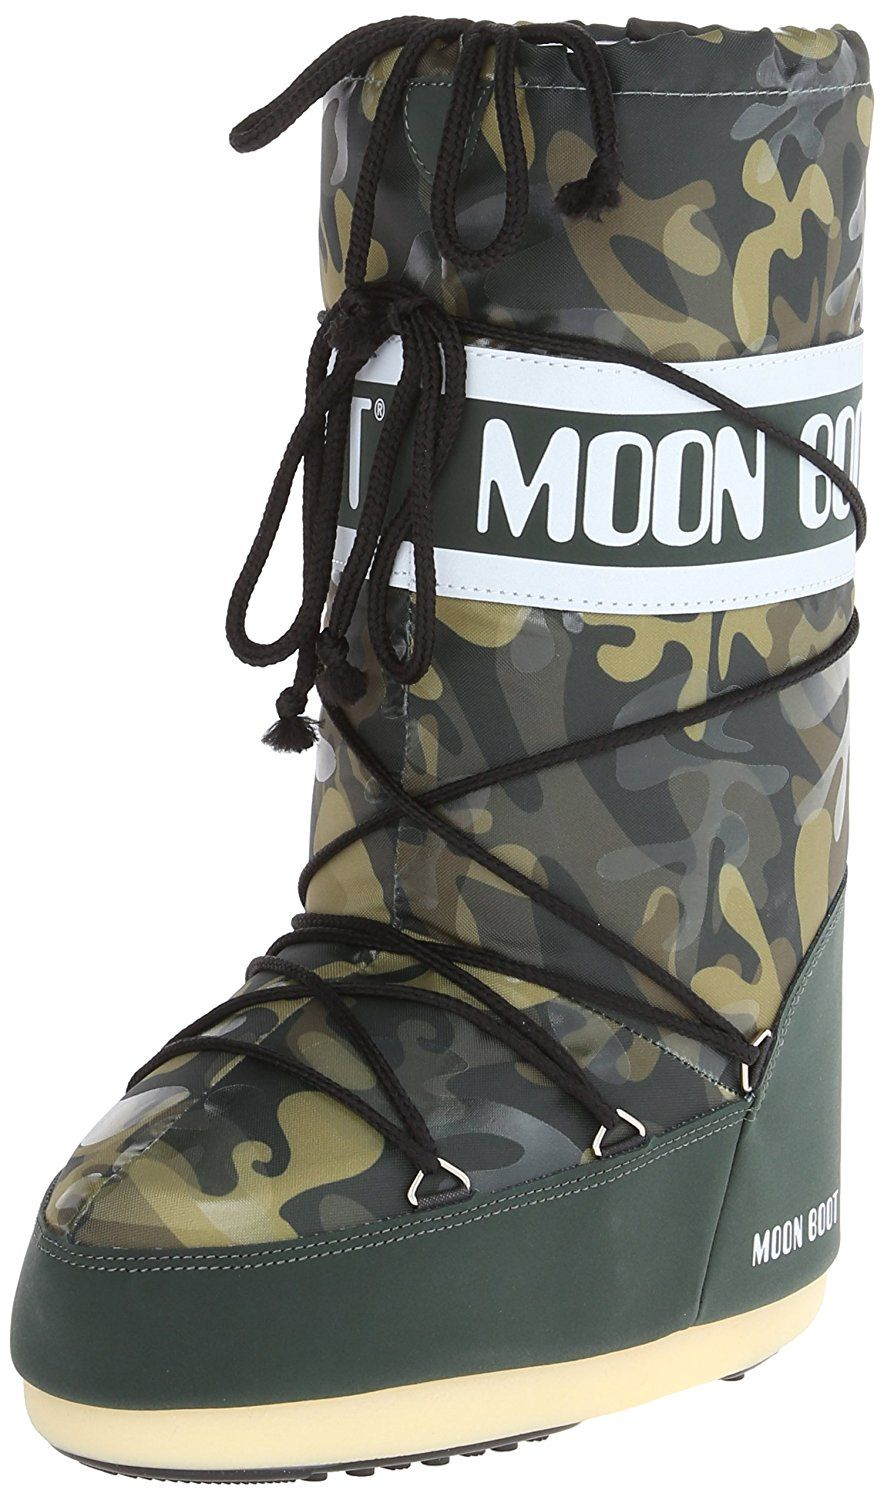 Tecnica Women's Camu Moon Winter Boot >>> Trust me, this is great!